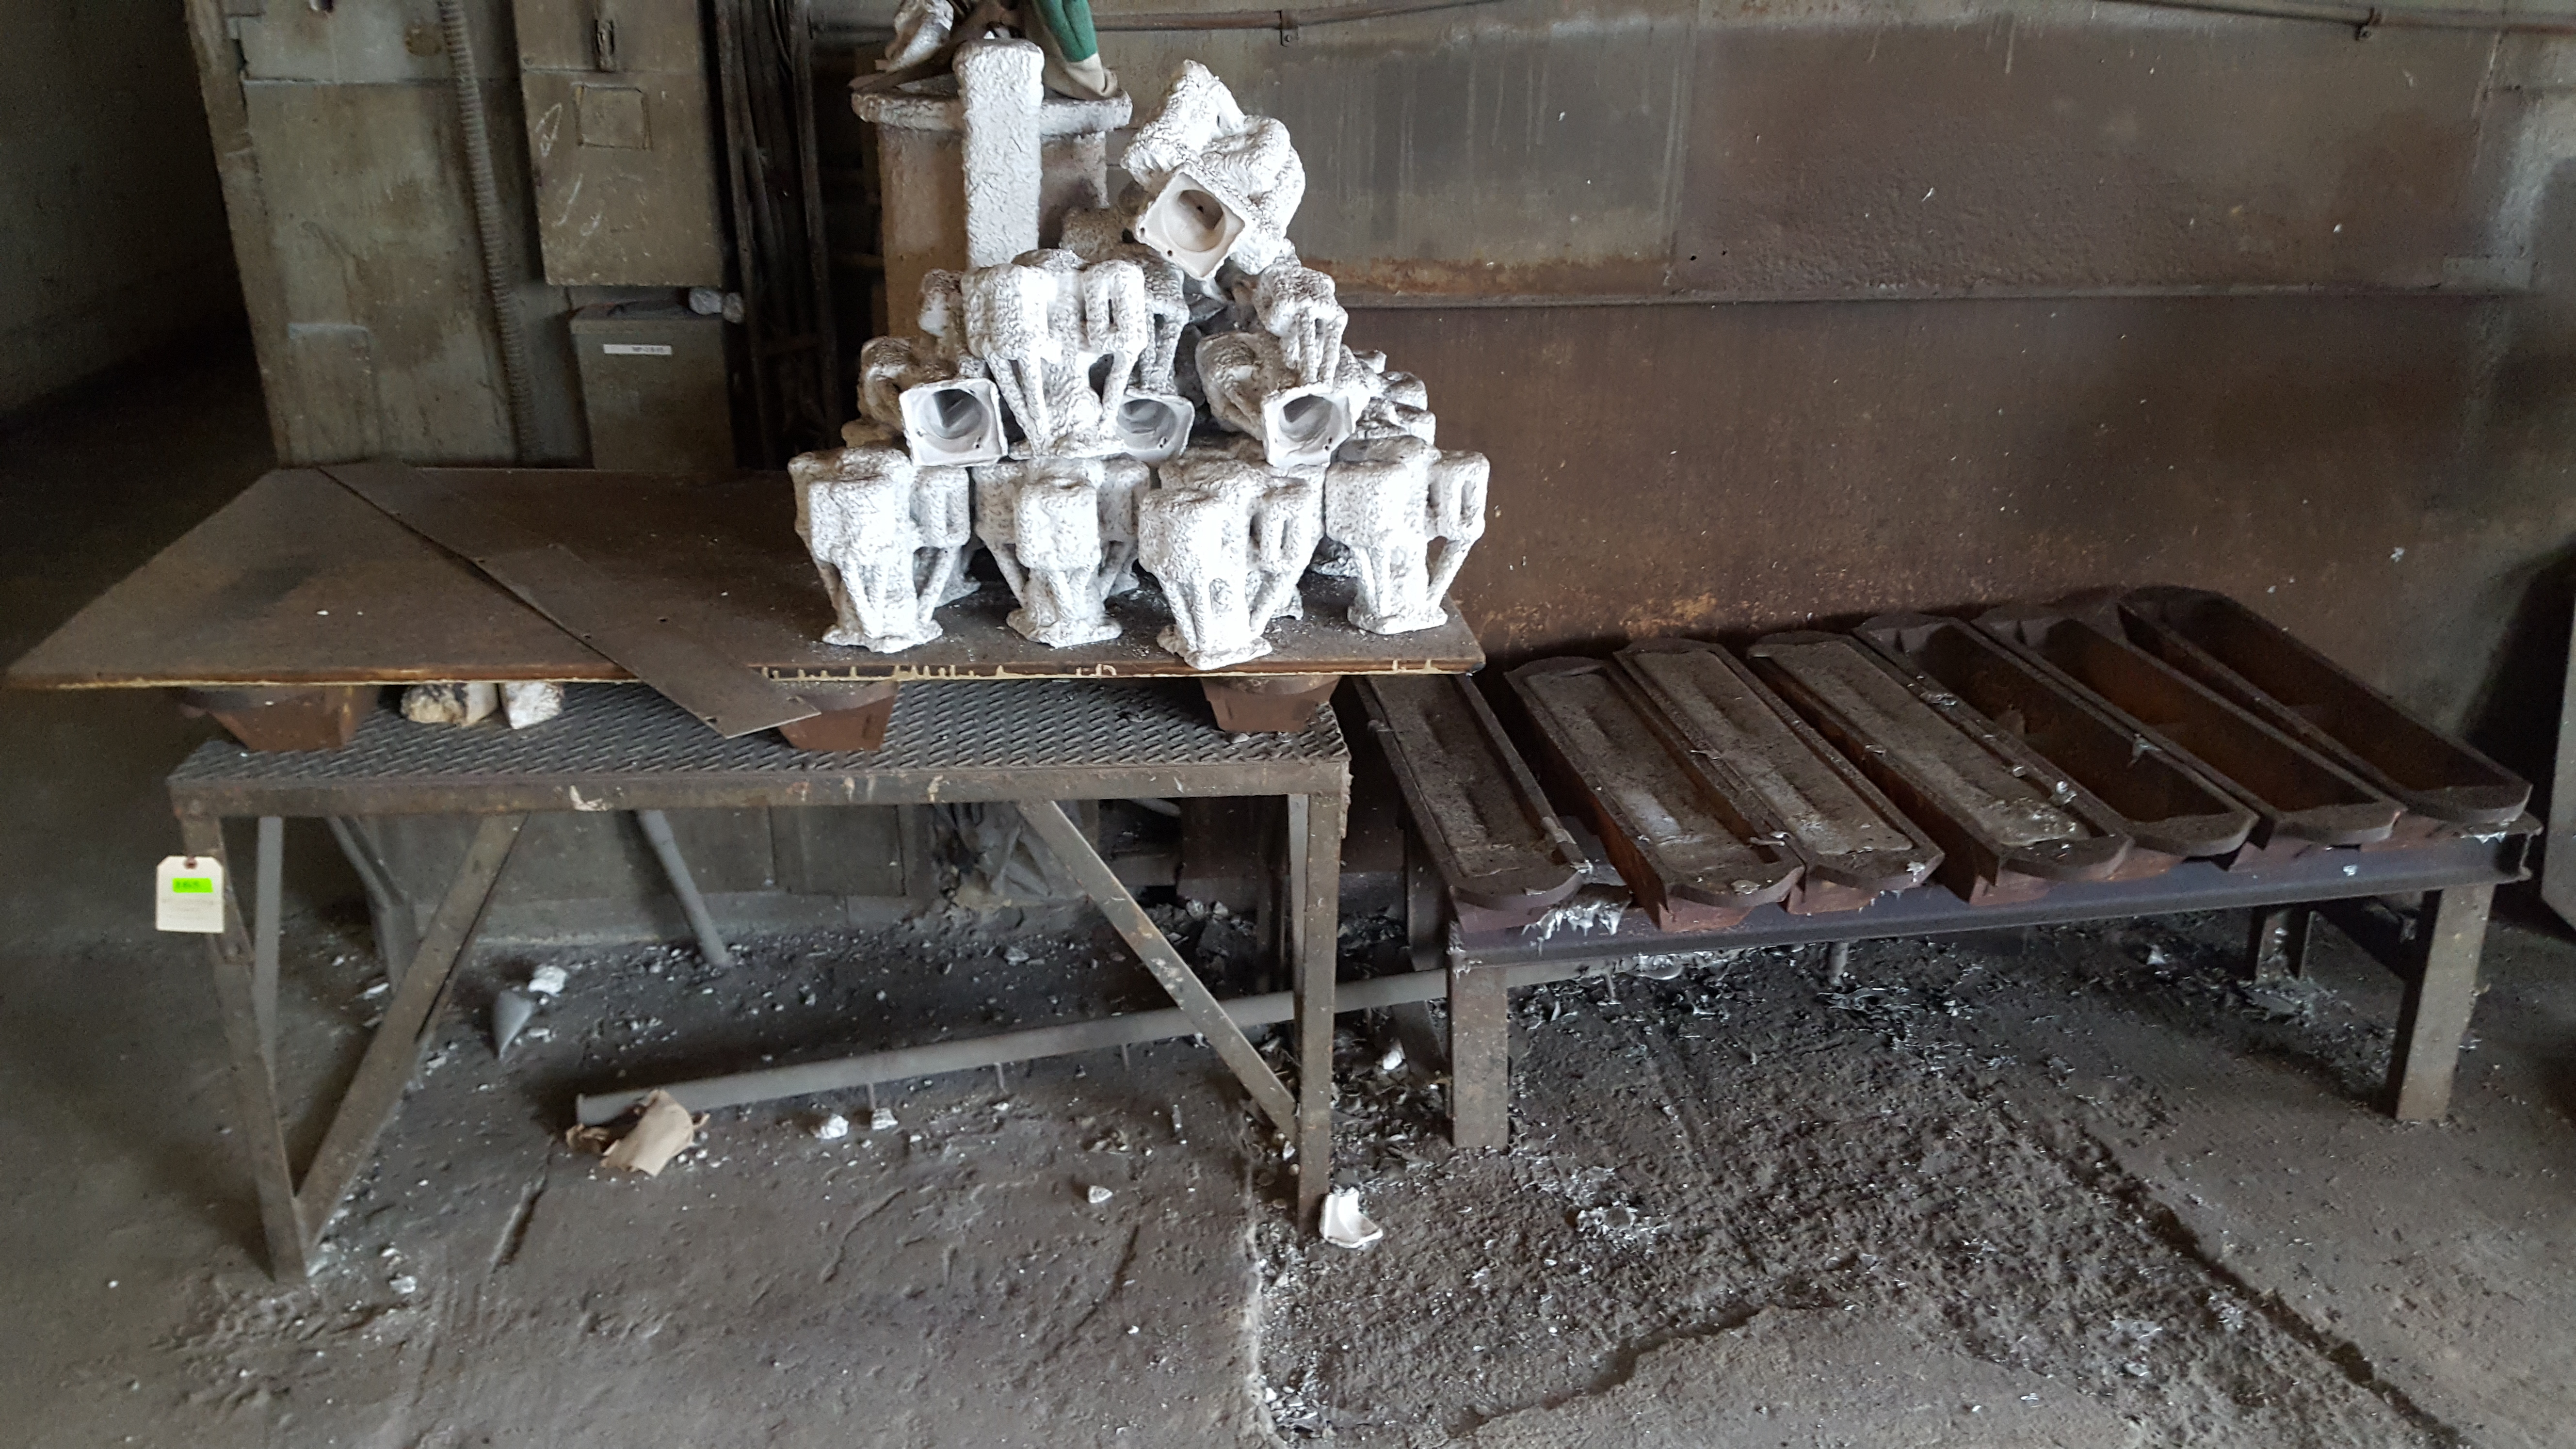 Lot 165 - TABLE AND MOLDS